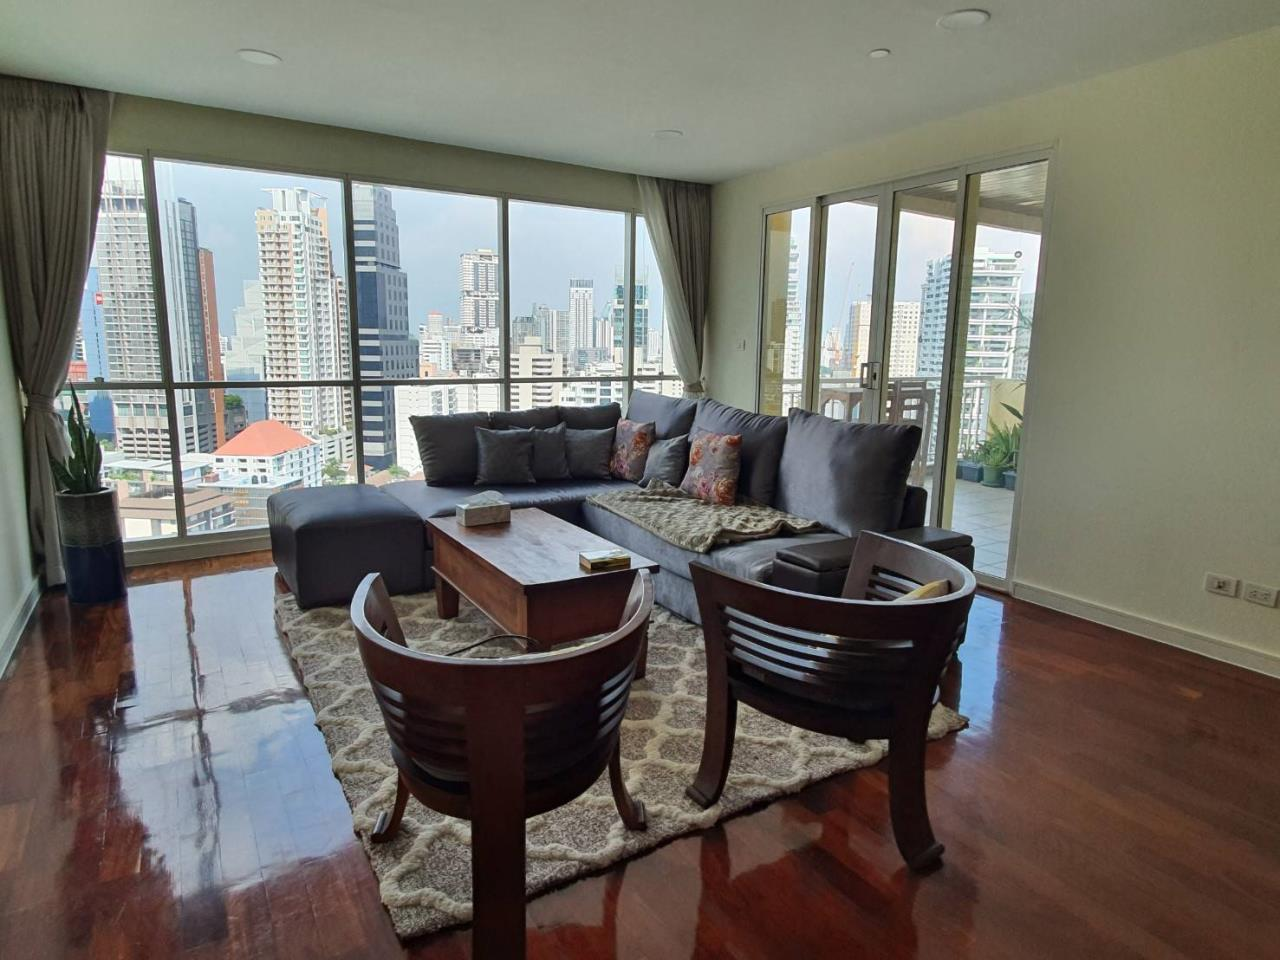 Bestbkkcondos Agency's Wilshire Condo Sukhumvit 22 - 140 SQ.M - for rent: 70,000 THB - 2 bedrooms, 2 bathrooms 16